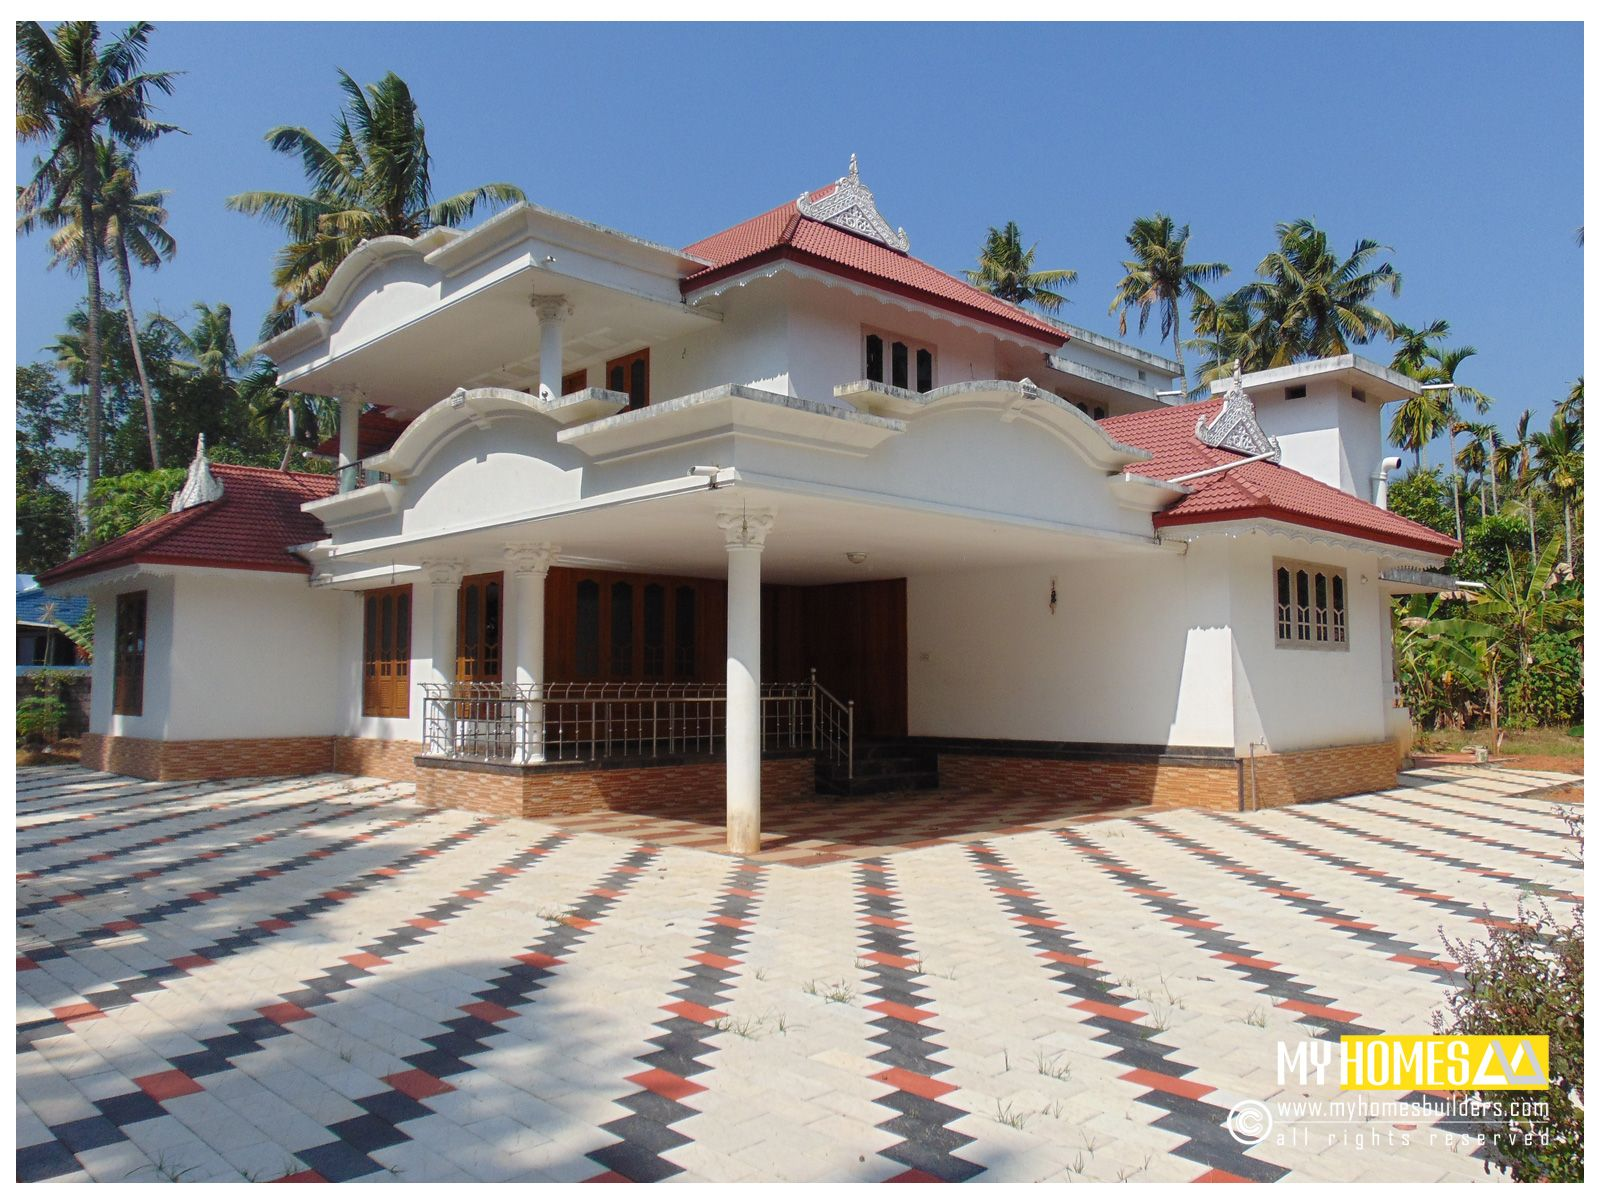 Traditional style kerala homes designs kerala traditional home designs from my homes designers and builders